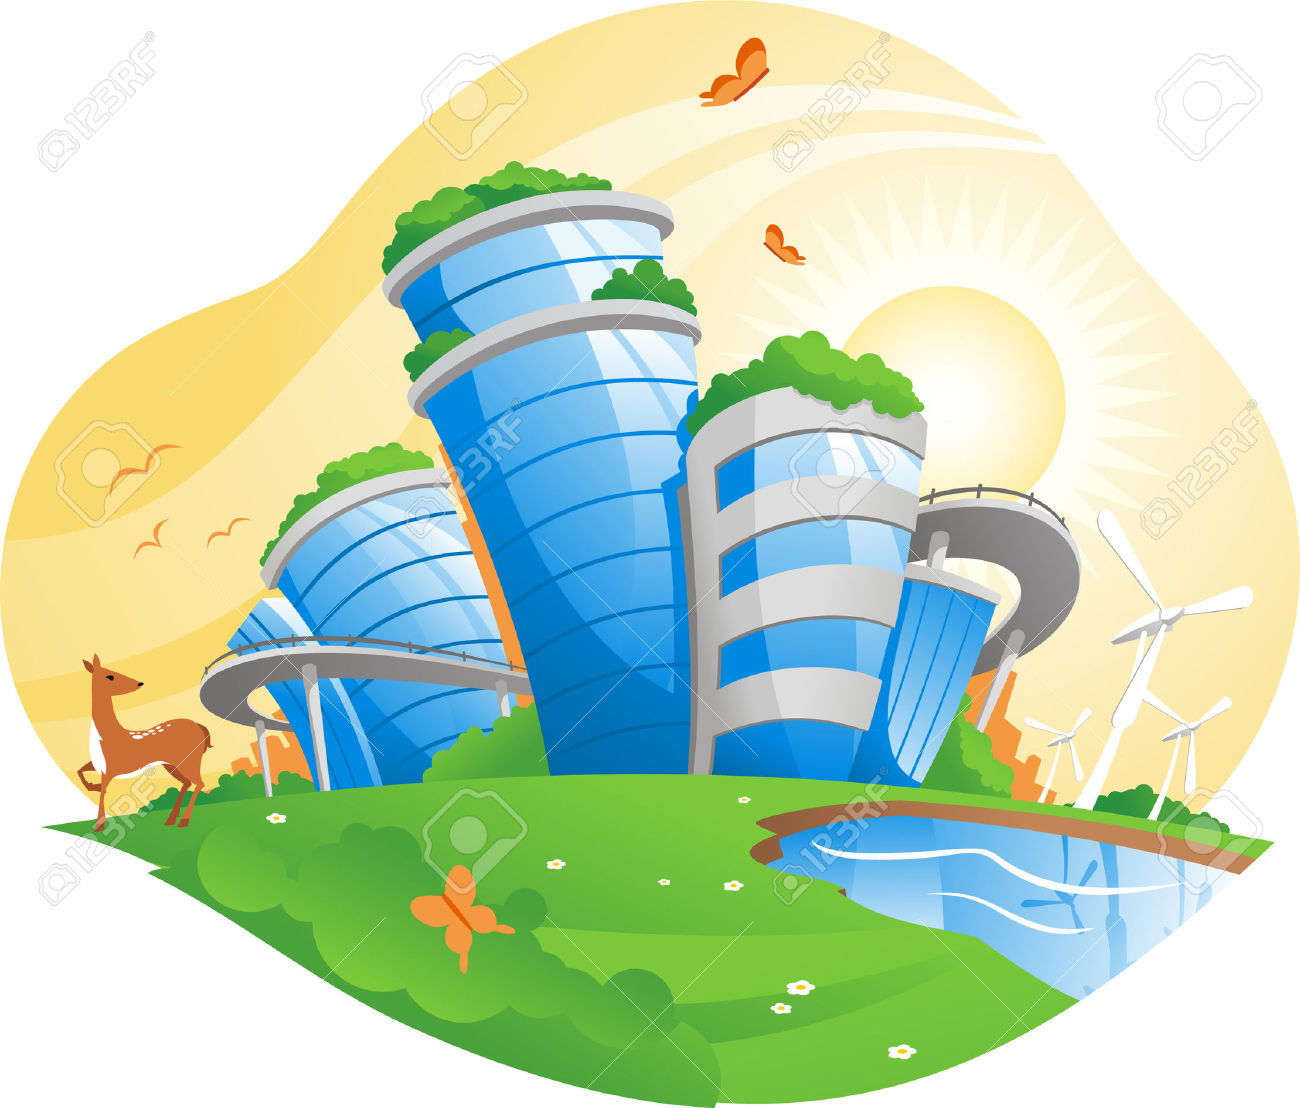 Ecological City, Working For The Environment, Antipollution.